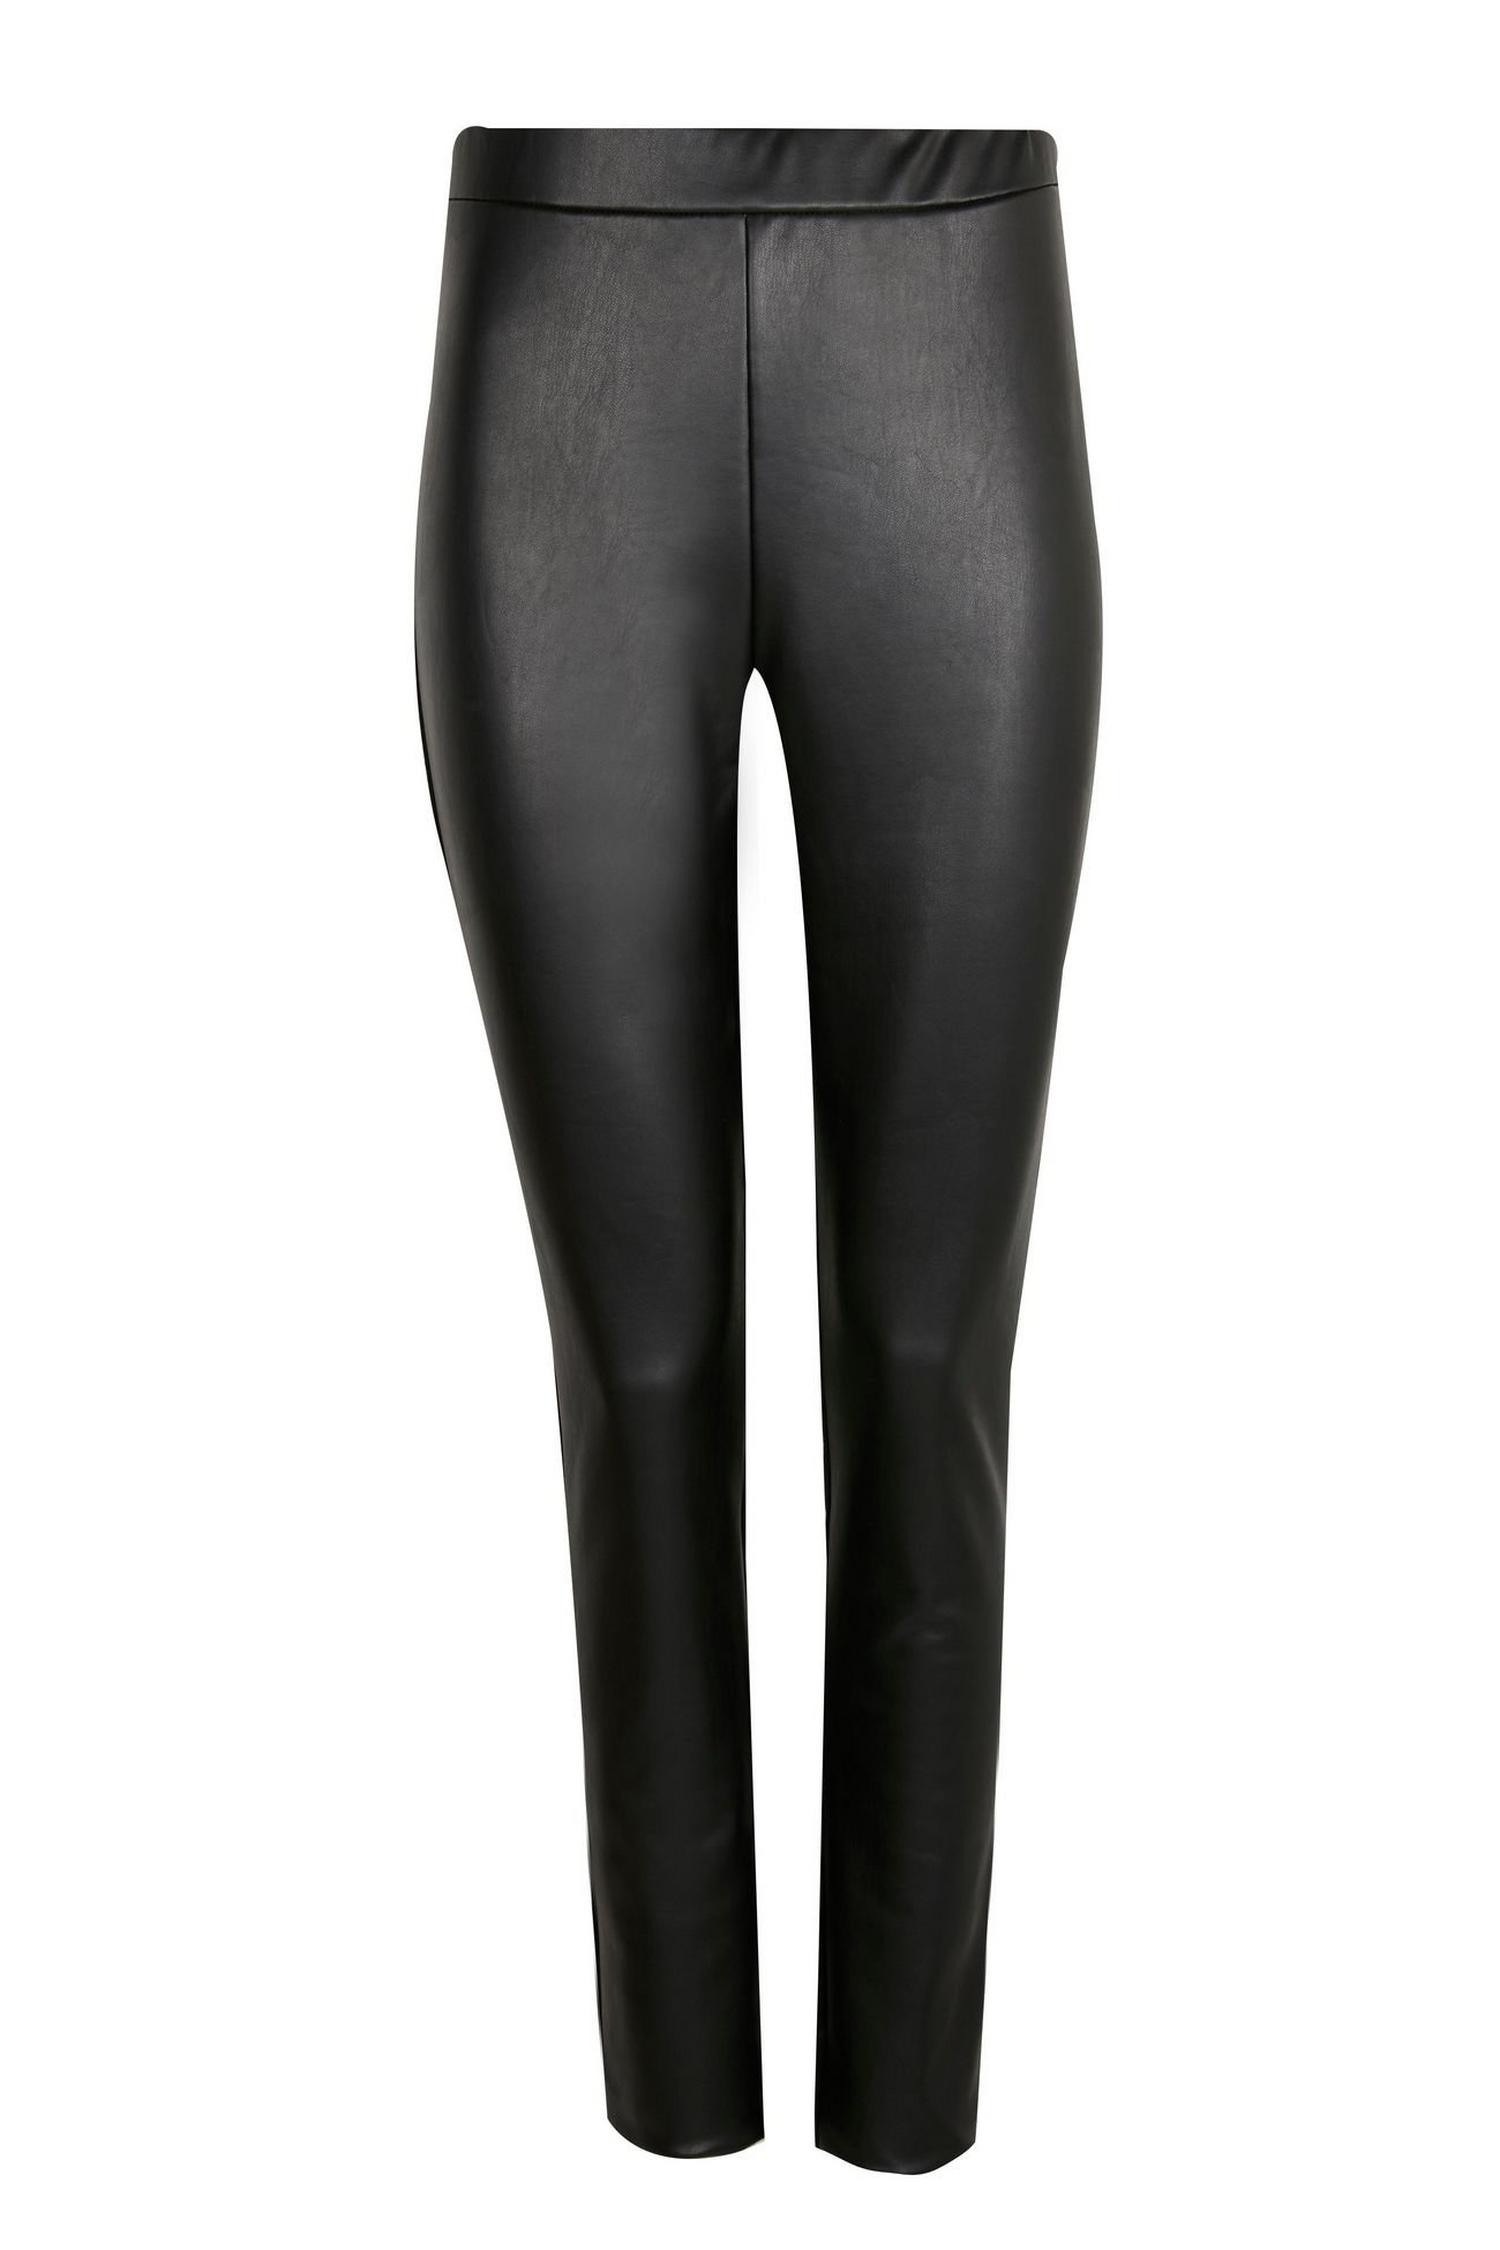 105 PETITE Faux Leather Leggings image number 4